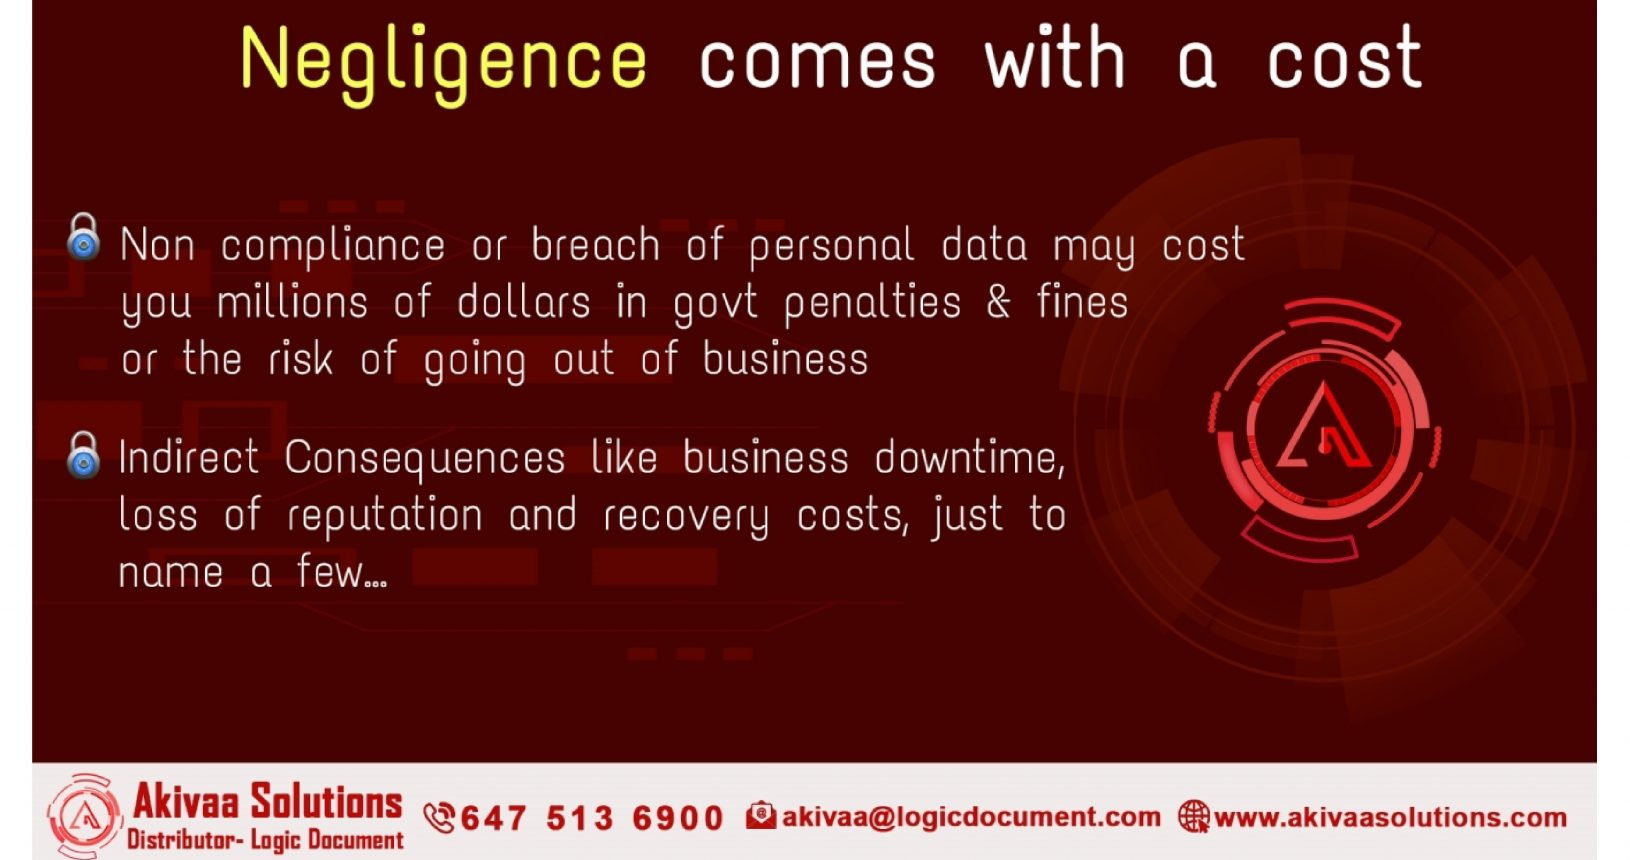 negligence comes with a cost